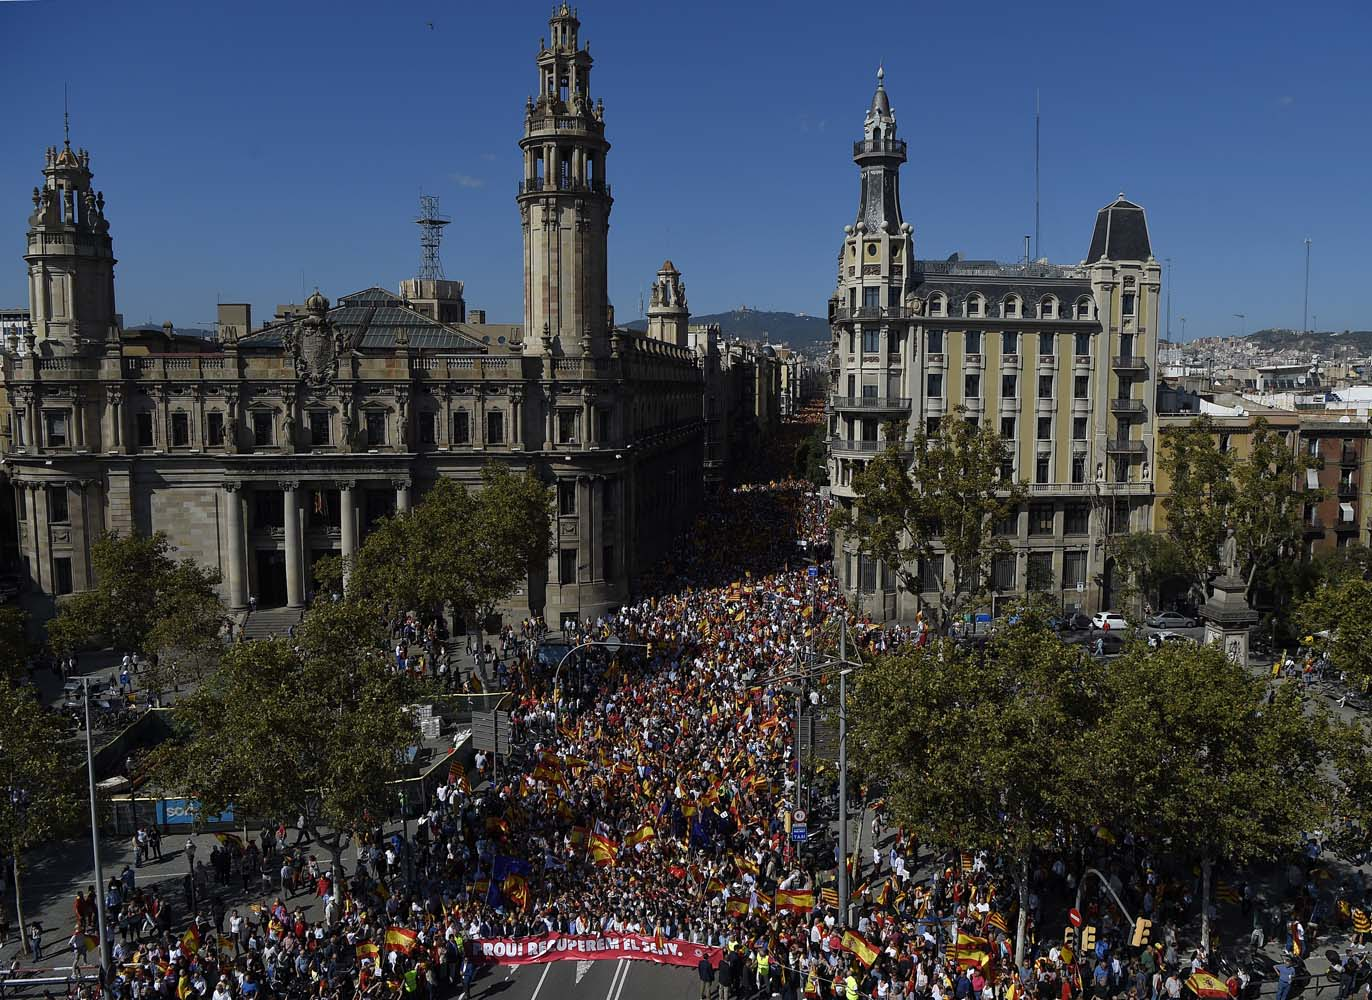 """This general view shows protesters holding a banner reading in Catalan """"Enough, regain lucidity"""" during a demonstration called by """"Societat Civil Catalans"""" (Catalan Civil Society) to support the unity of Spain on October 8, 2017 in Barcelona. Spain braced for more protests despite tentative signs that the sides may be seeking to defuse the crisis after Madrid offered a first apology to Catalans injured by police during their outlawed independence vote. / AFP PHOTO / LLUIS GENE"""